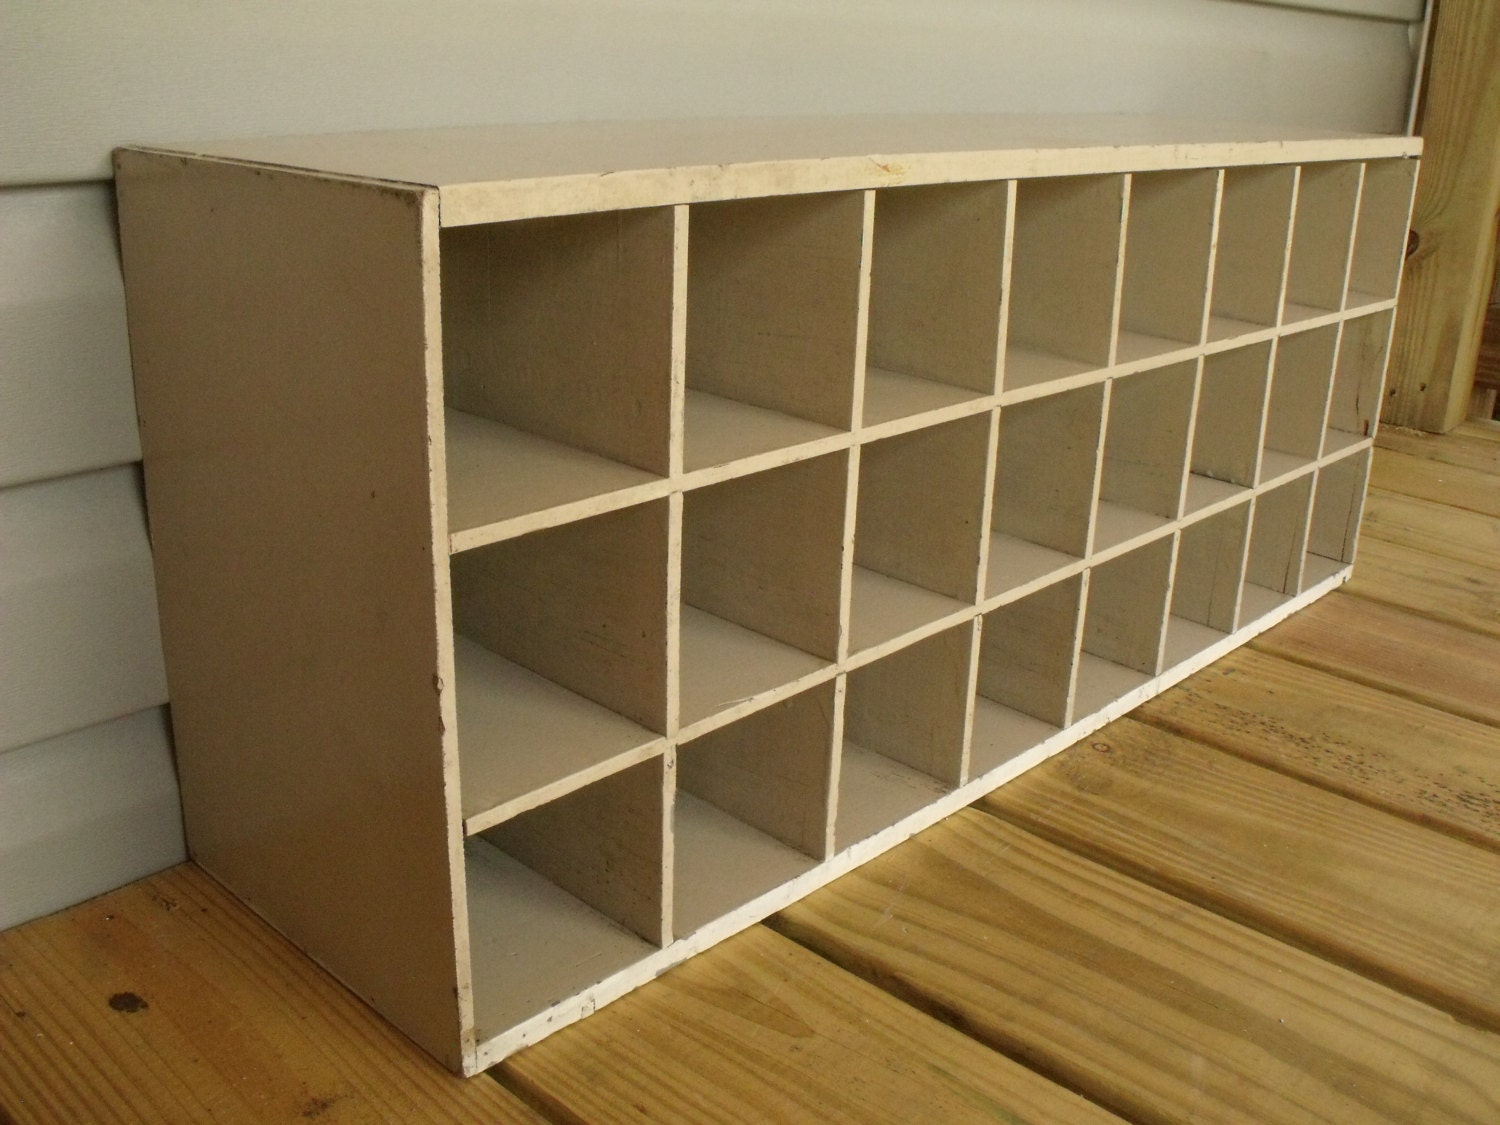 24 Cubby Etsy Shop Organizer Wood Office Mail Garage Gym